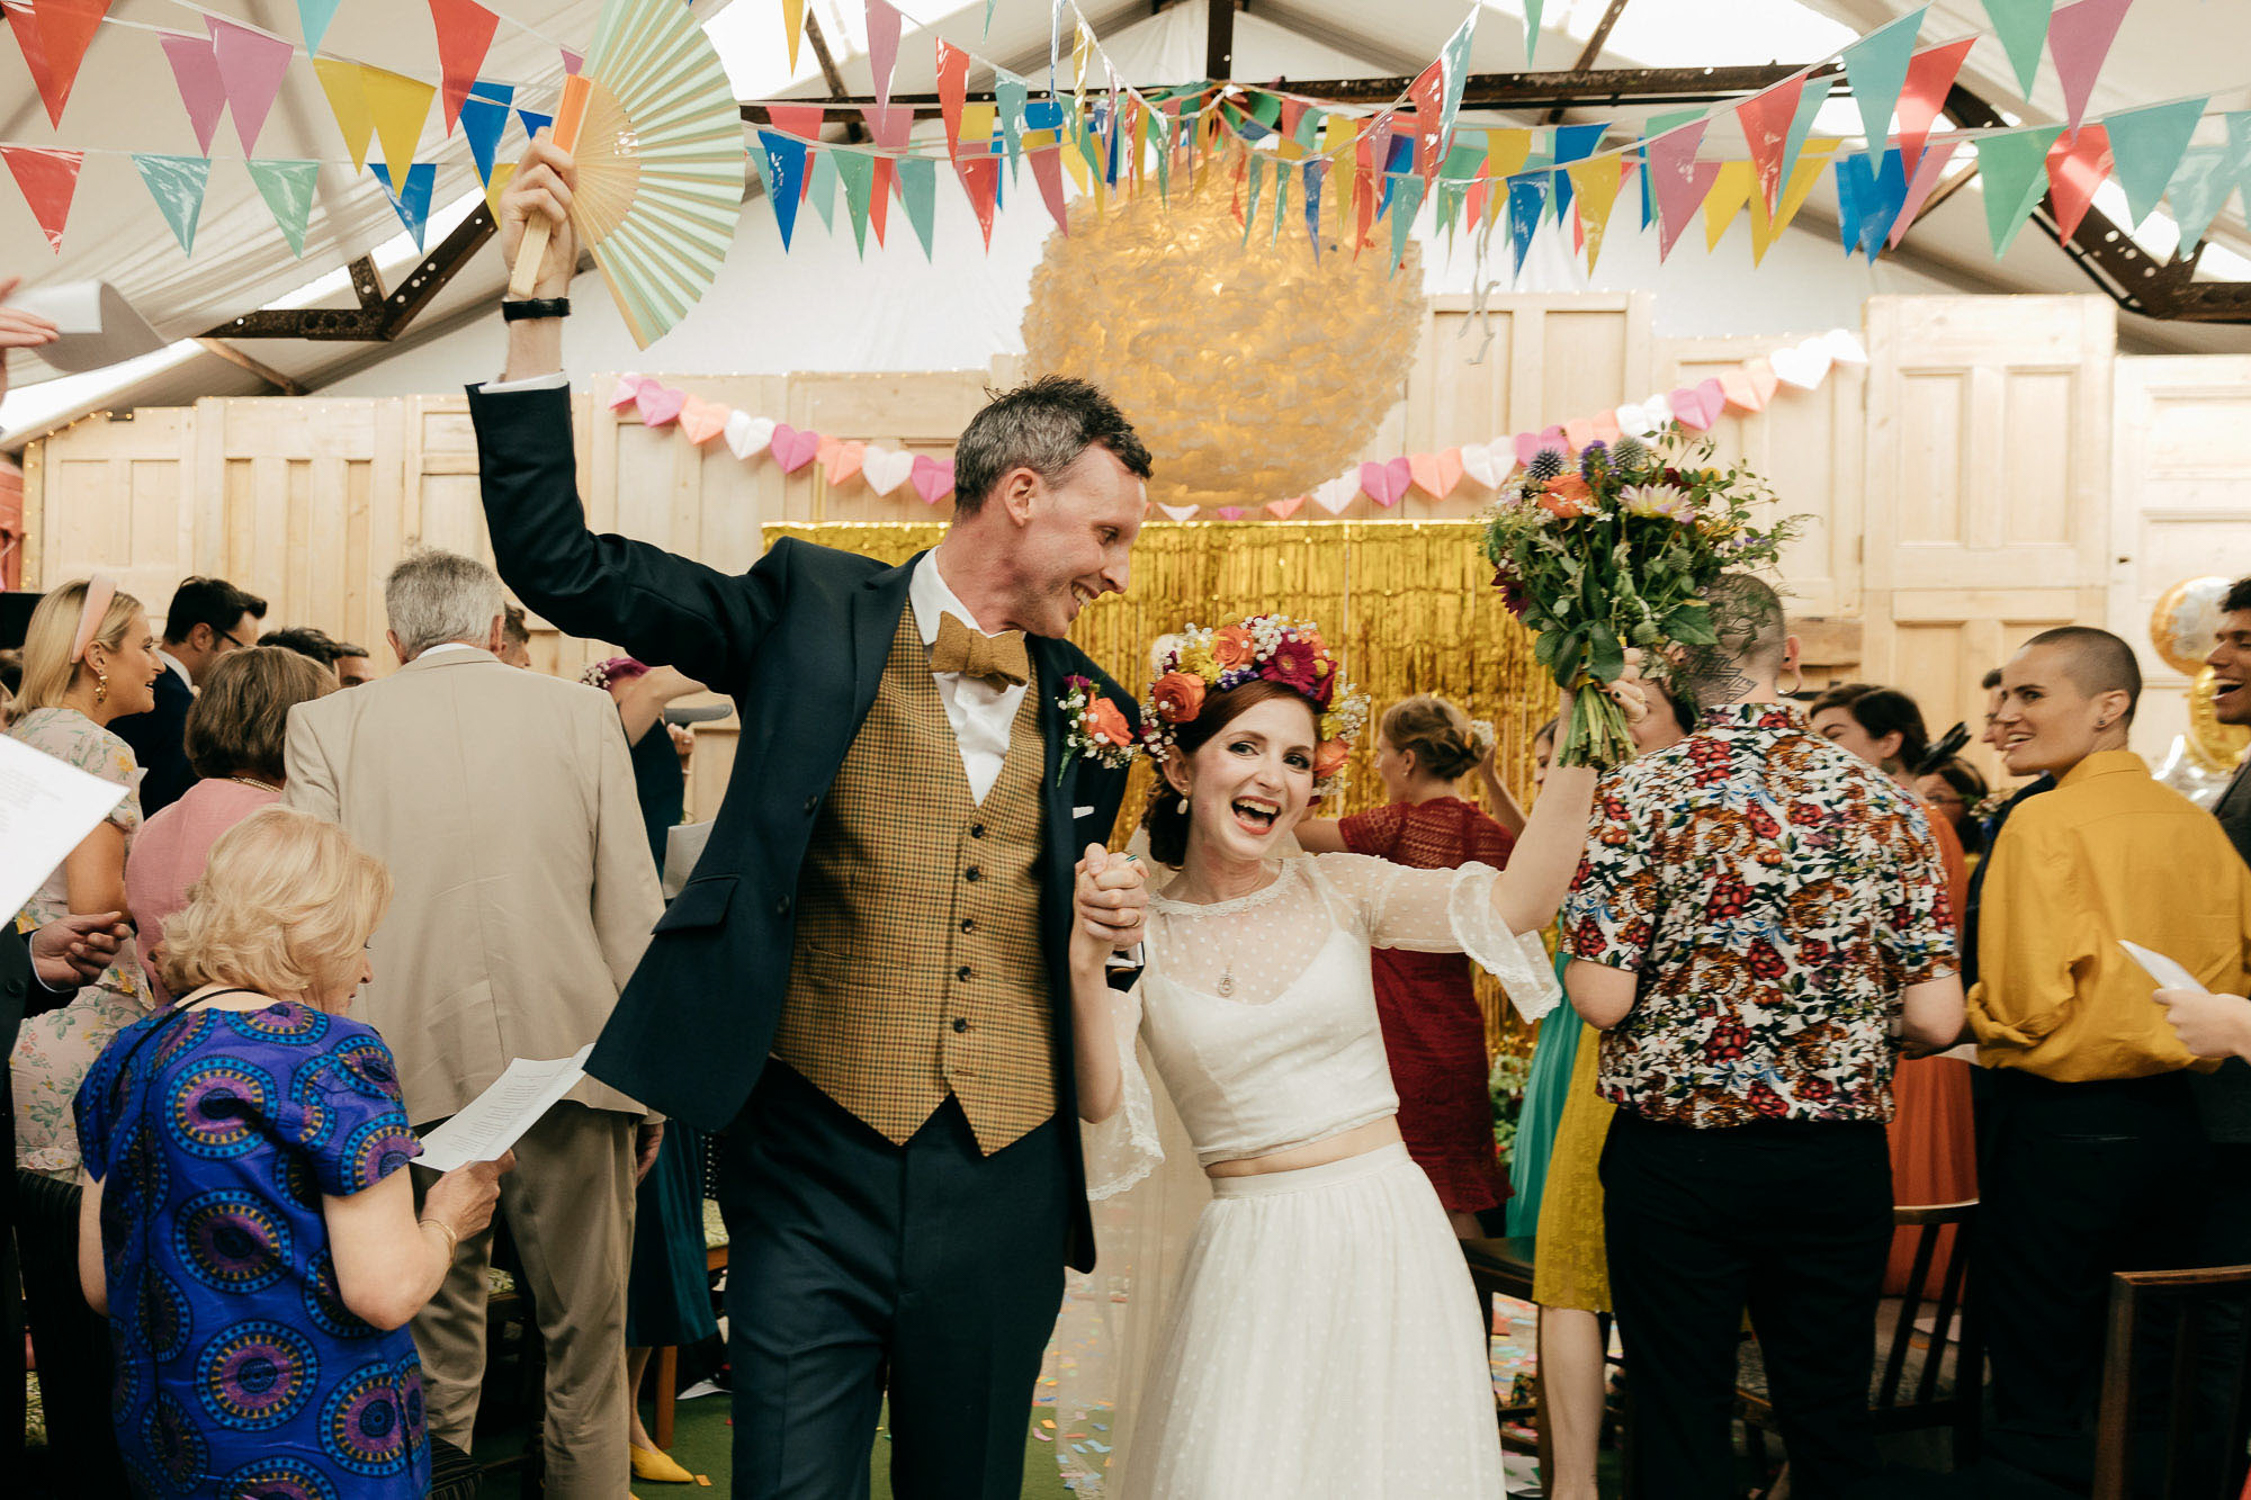 bride and groom with quirky vintage bridal style celebrate their marriage